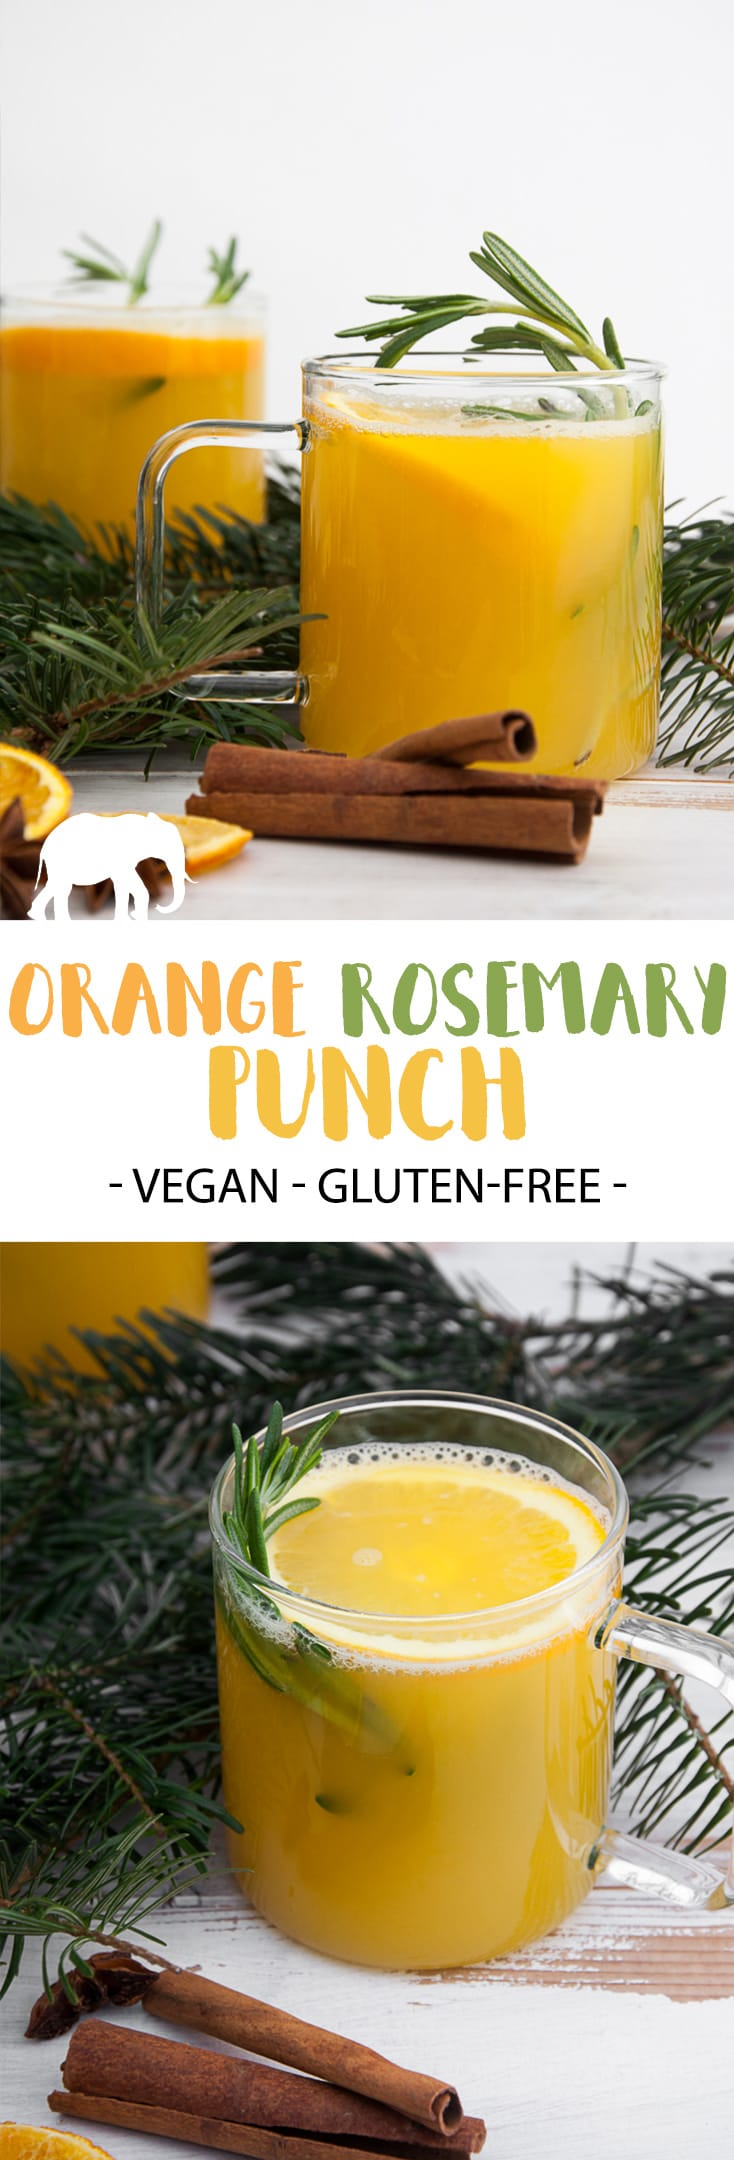 Orange Rosemary Punch - a warm and delicious alcoholic drink for the christmas season! #vegan #drink #alcohol #orange #rosemary #festive  #punch | ElephanasticVegan.com